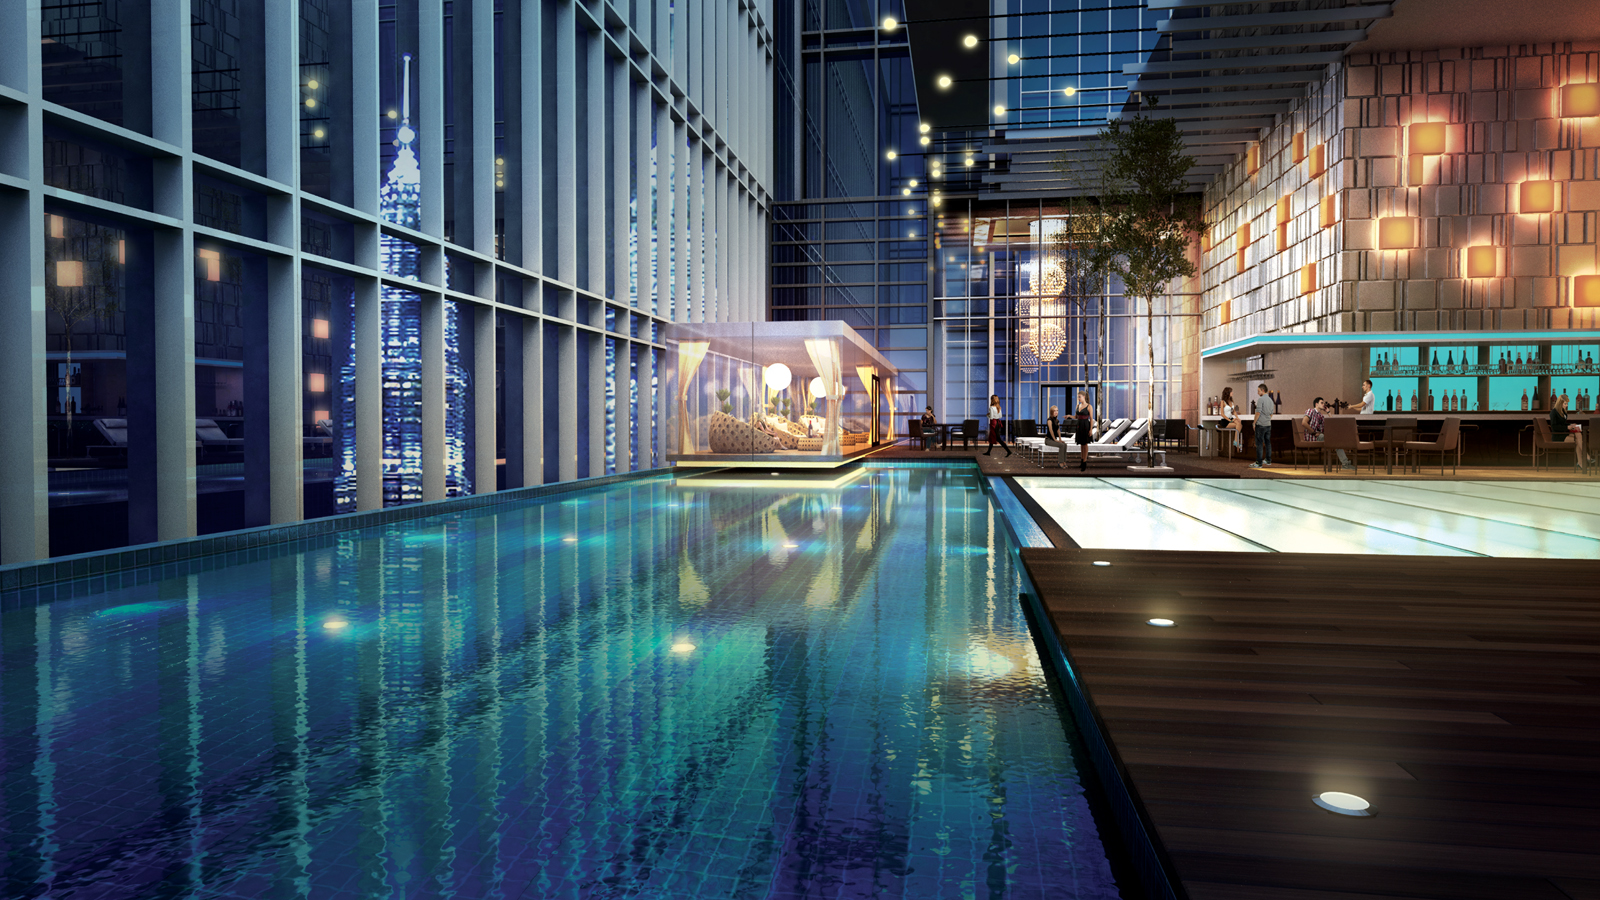 Country group and four seasons hotels and resorts announce - 4 star hotels in lisbon with swimming pool ...